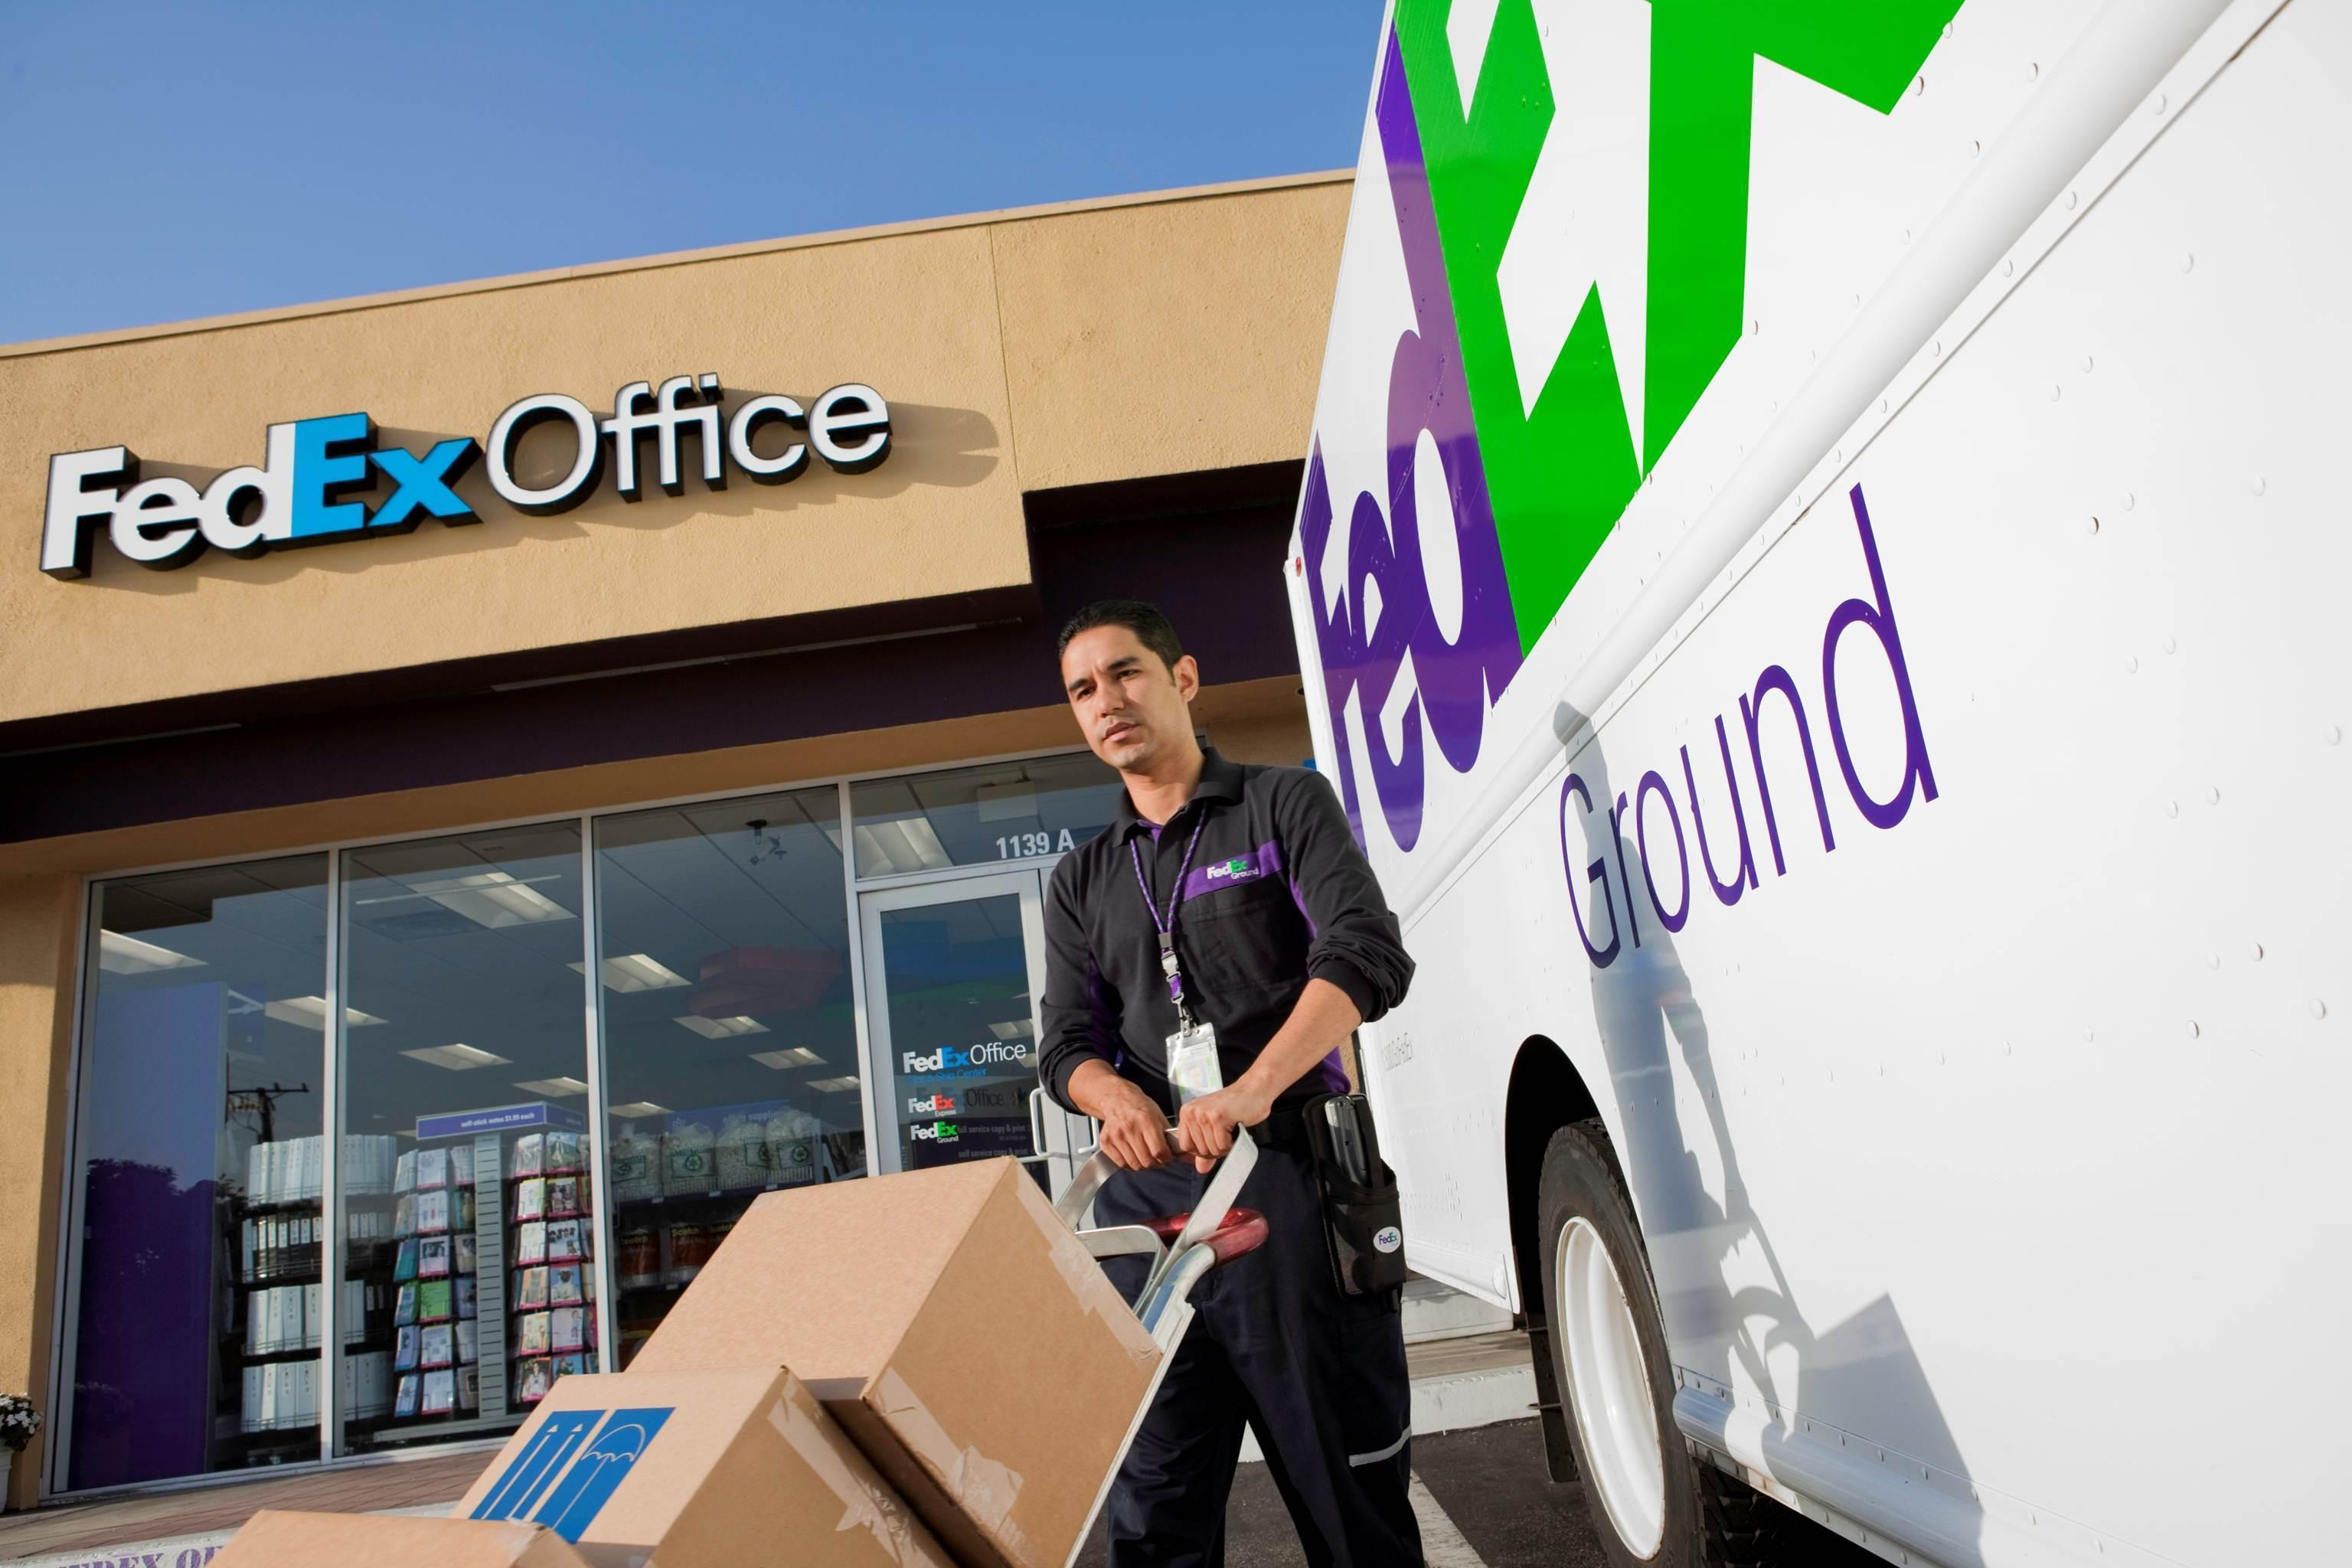 Drop off your FedEx packages.